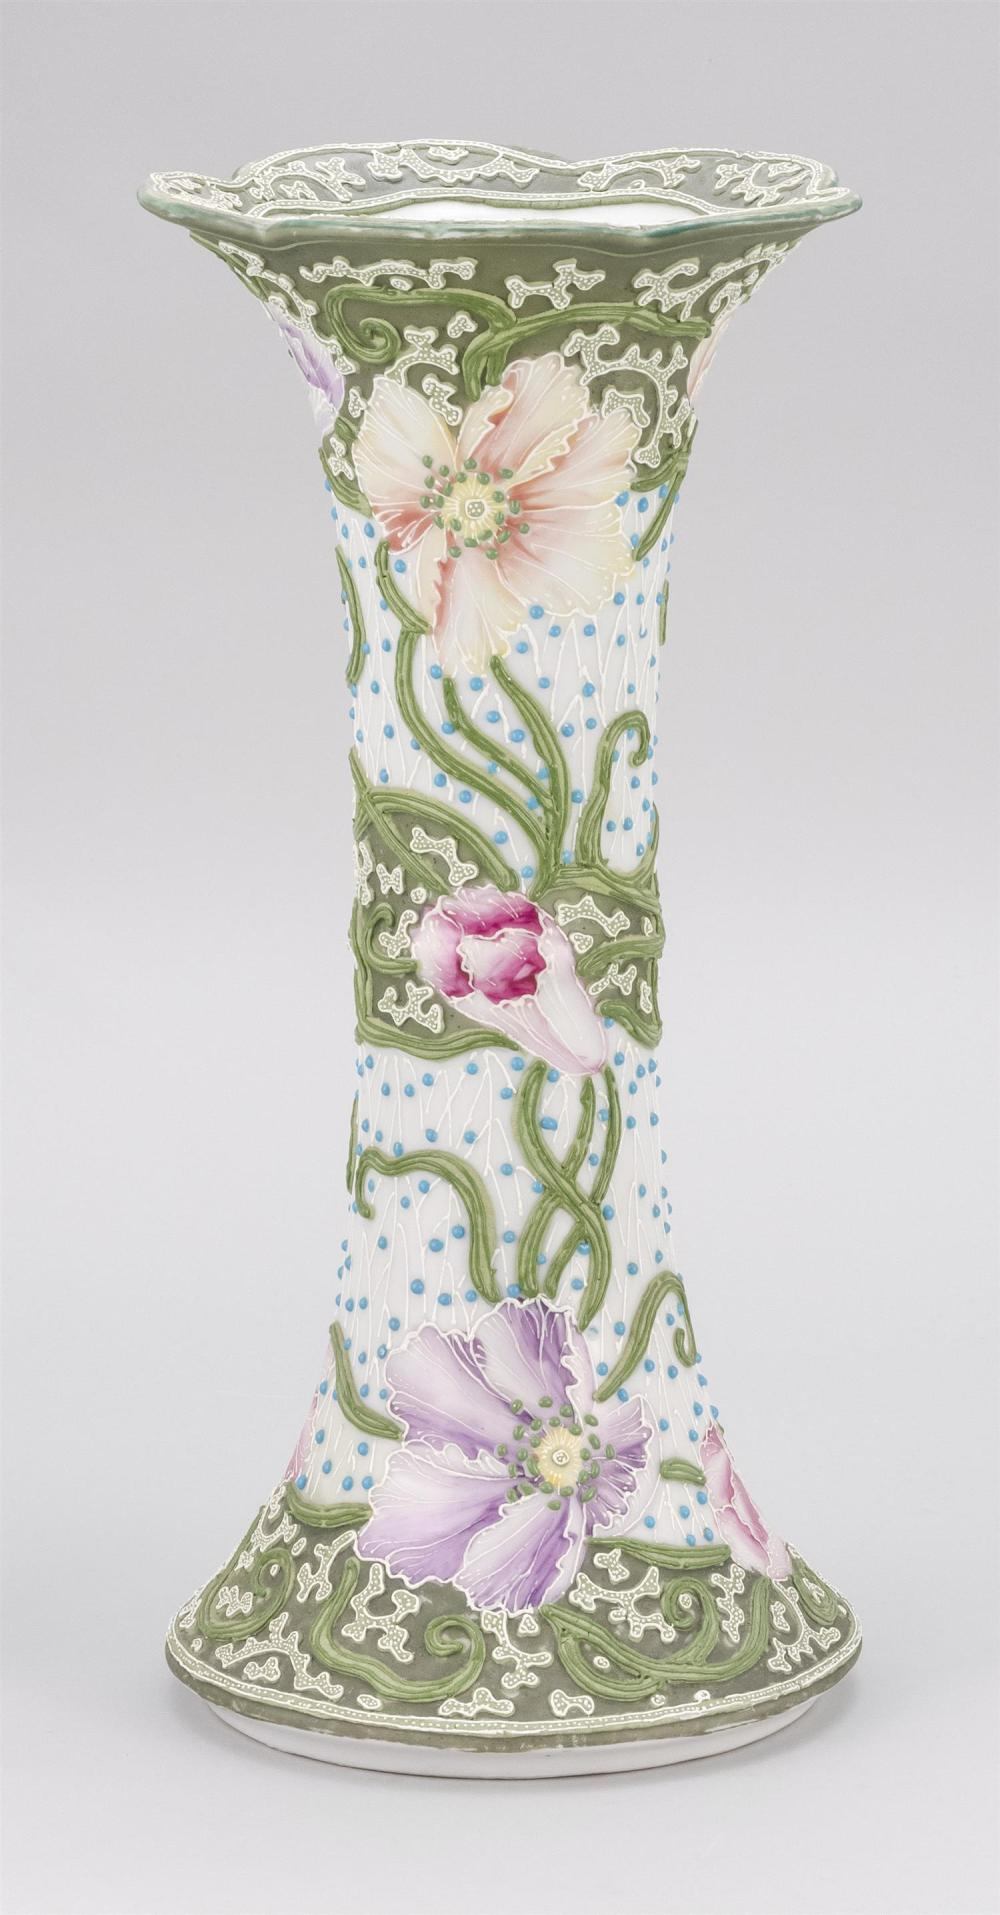 MORIAGE NIPPON PORCELAIN VASE In trumpet form, with elaborate floral design. Height 14